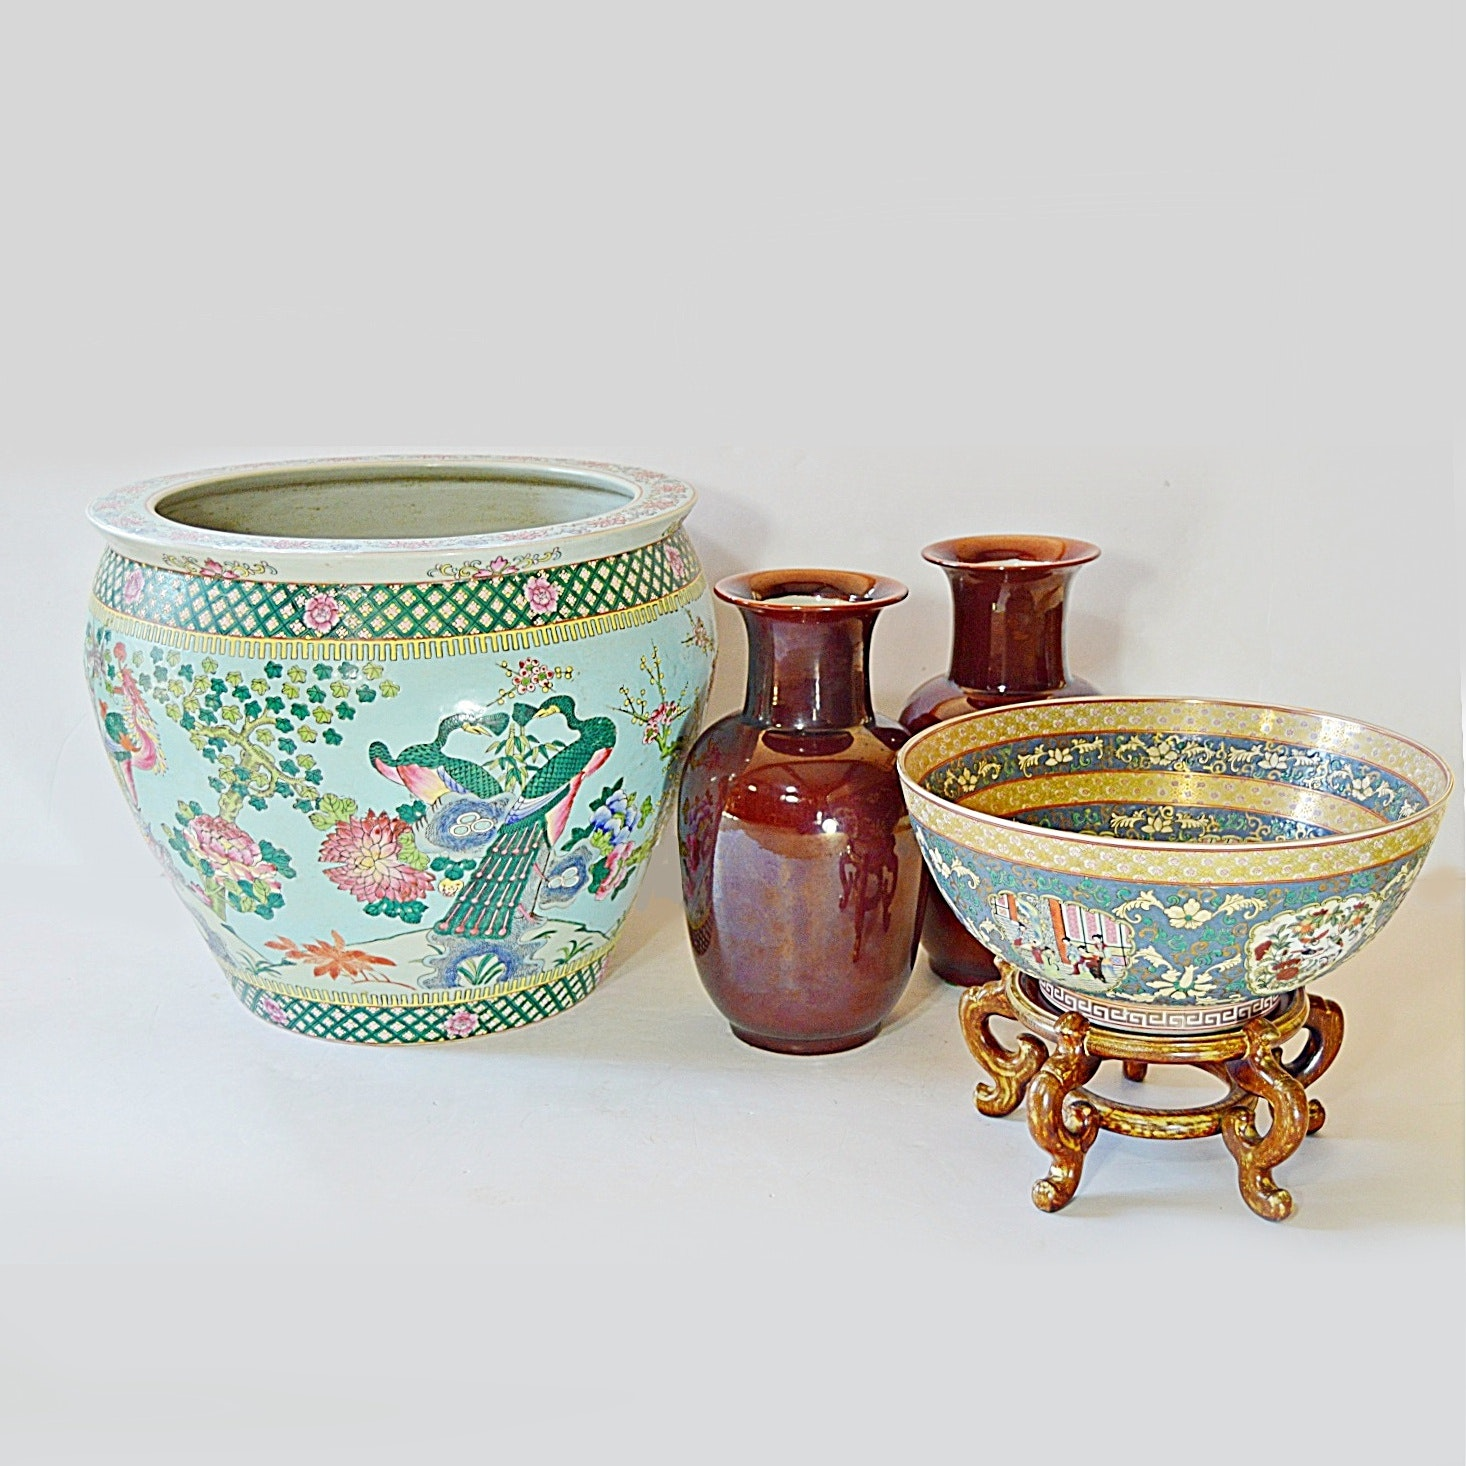 Chinese and Japanese Porcelain Vases and Planters